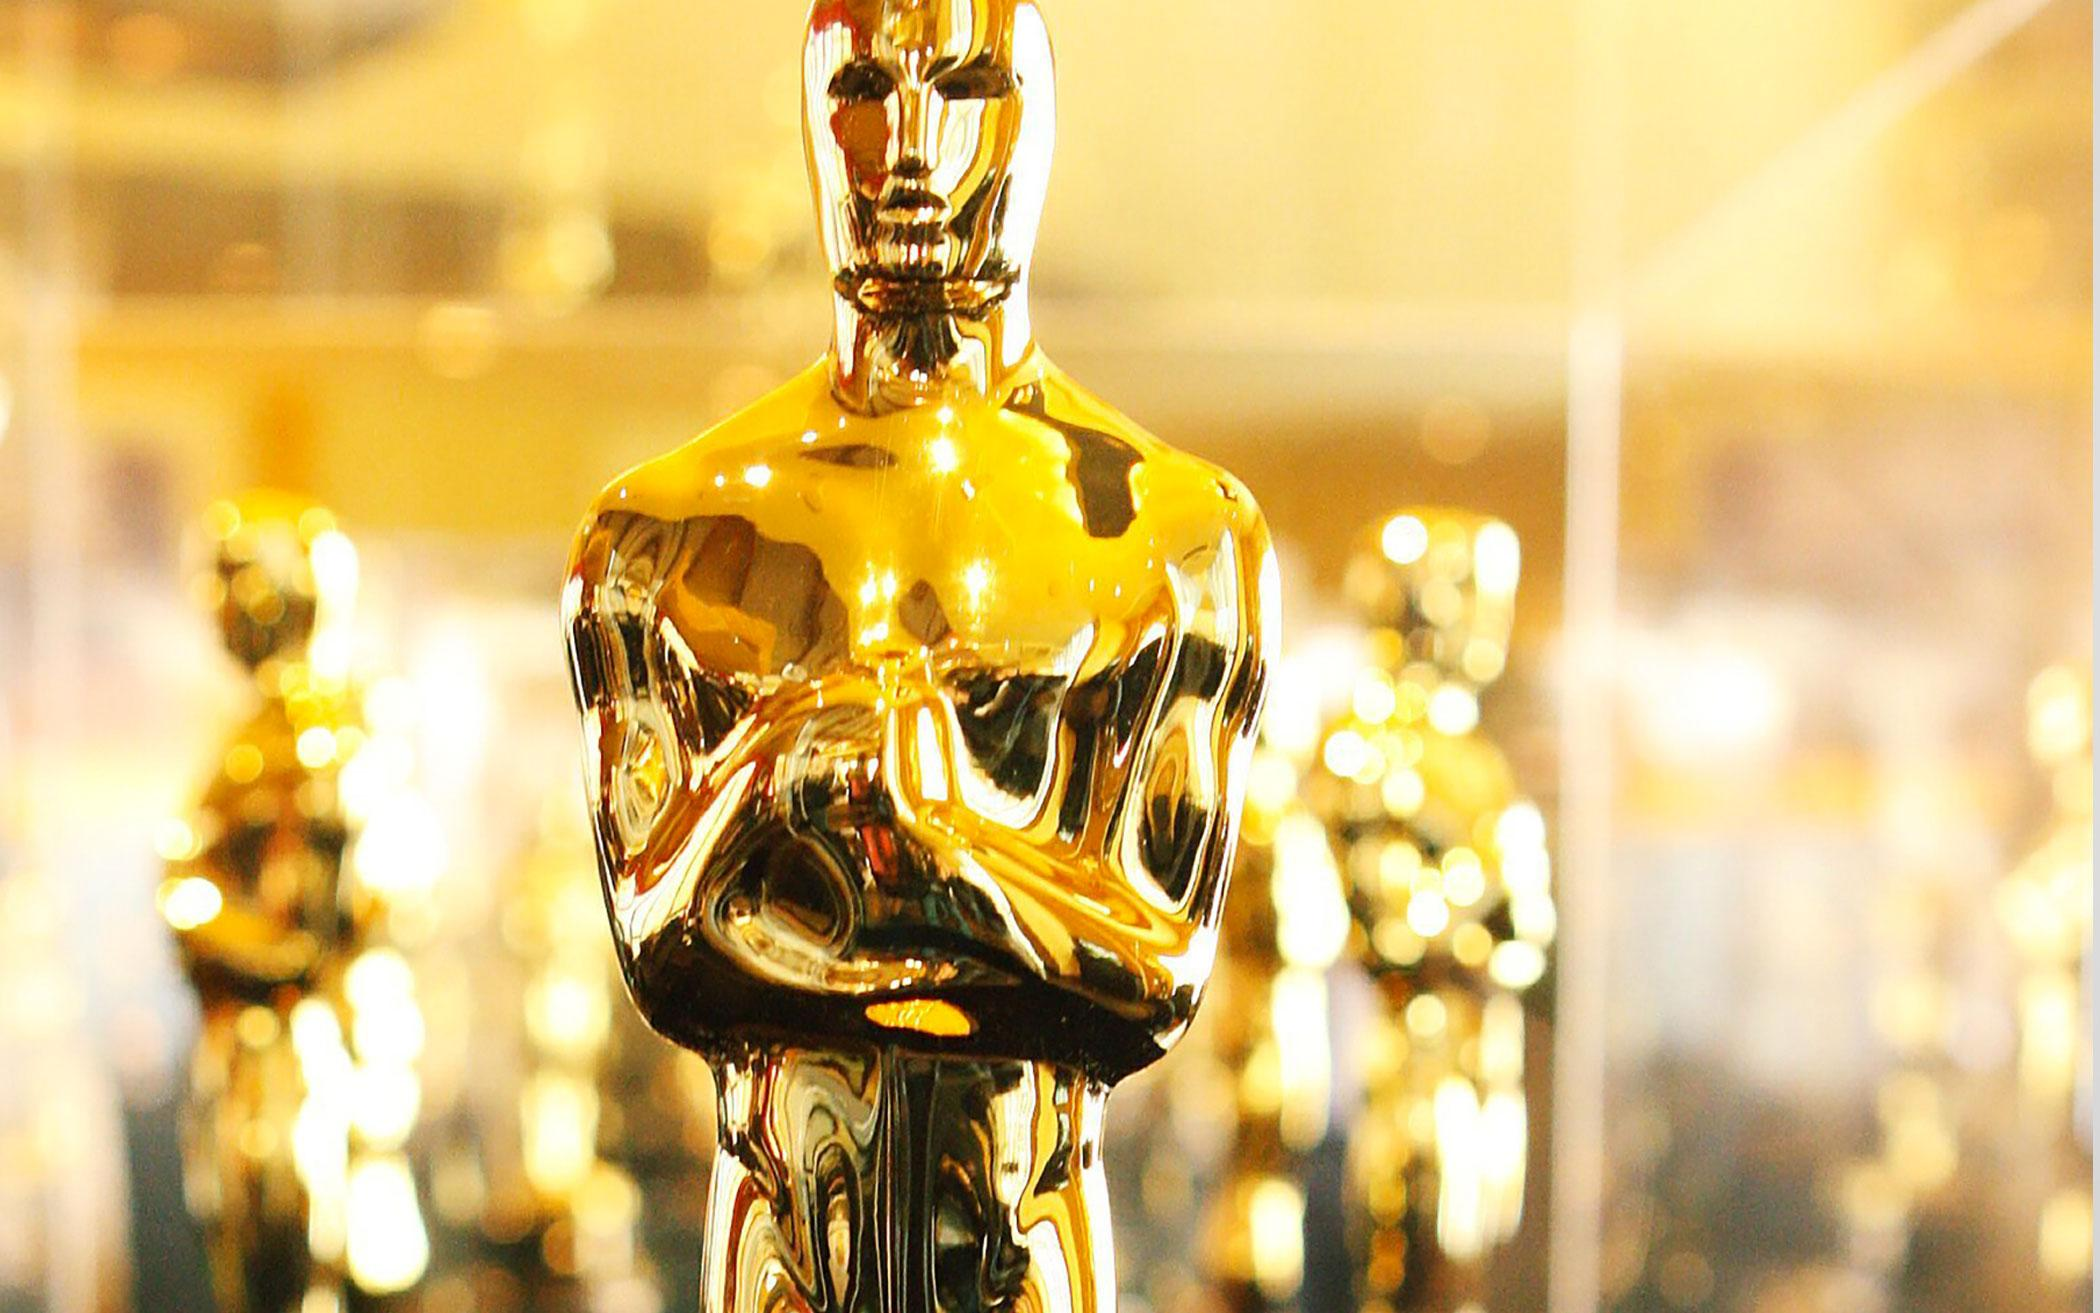 What Can We Lessons from the Oscars?